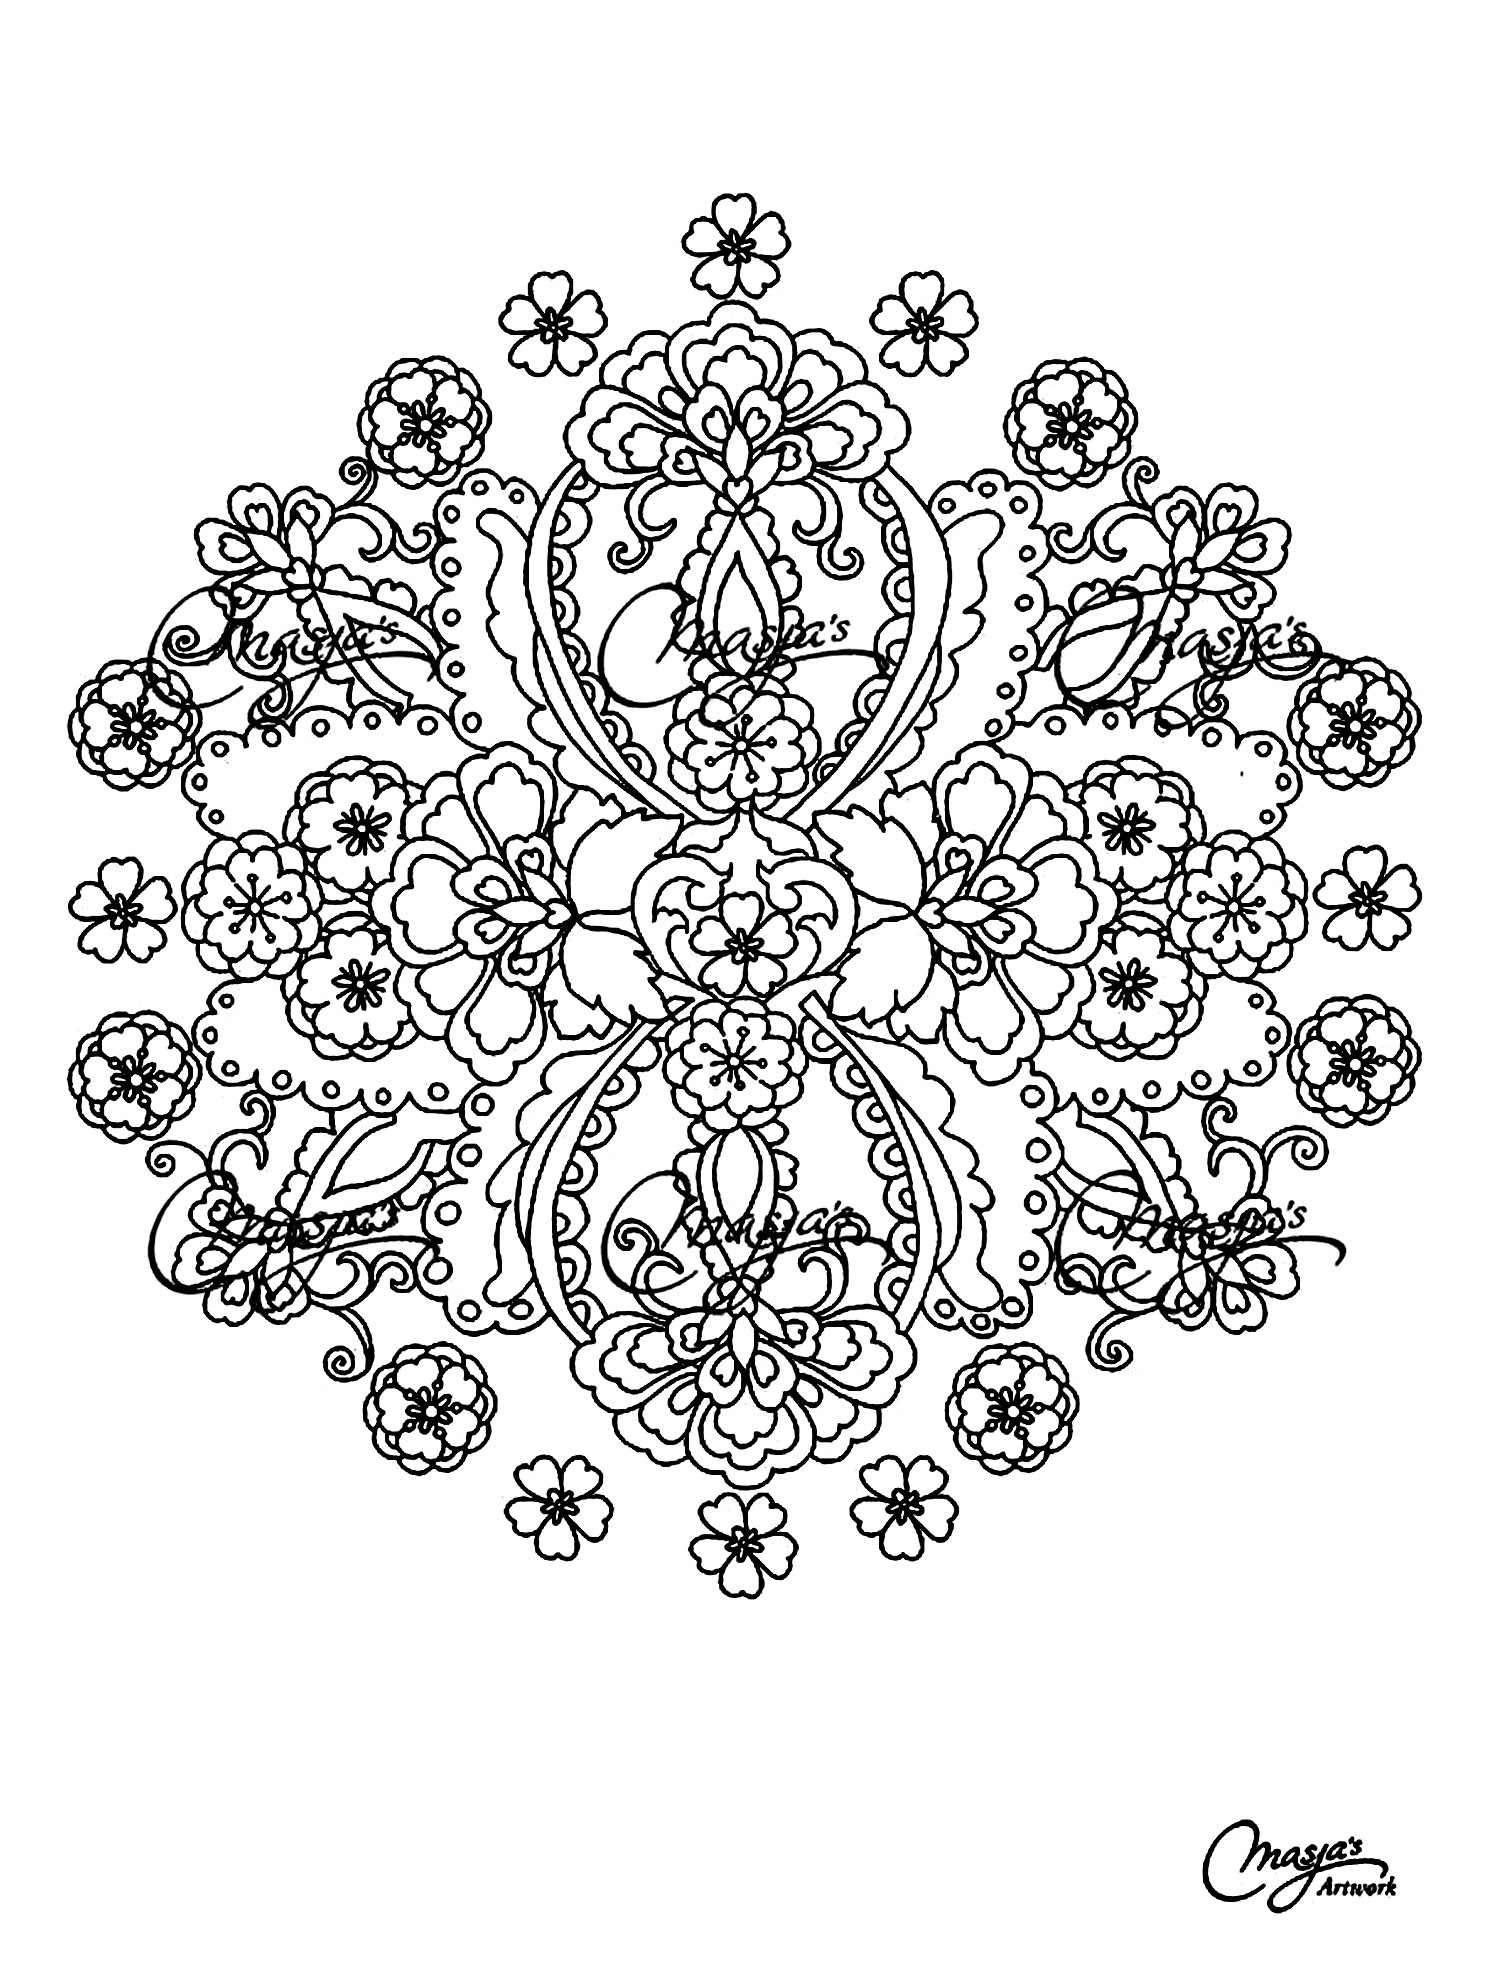 Mystical mandala coloring pages - Mystical Mandala Coloring Pages Free Coloring Adult Mandalas Flowers Free To Print